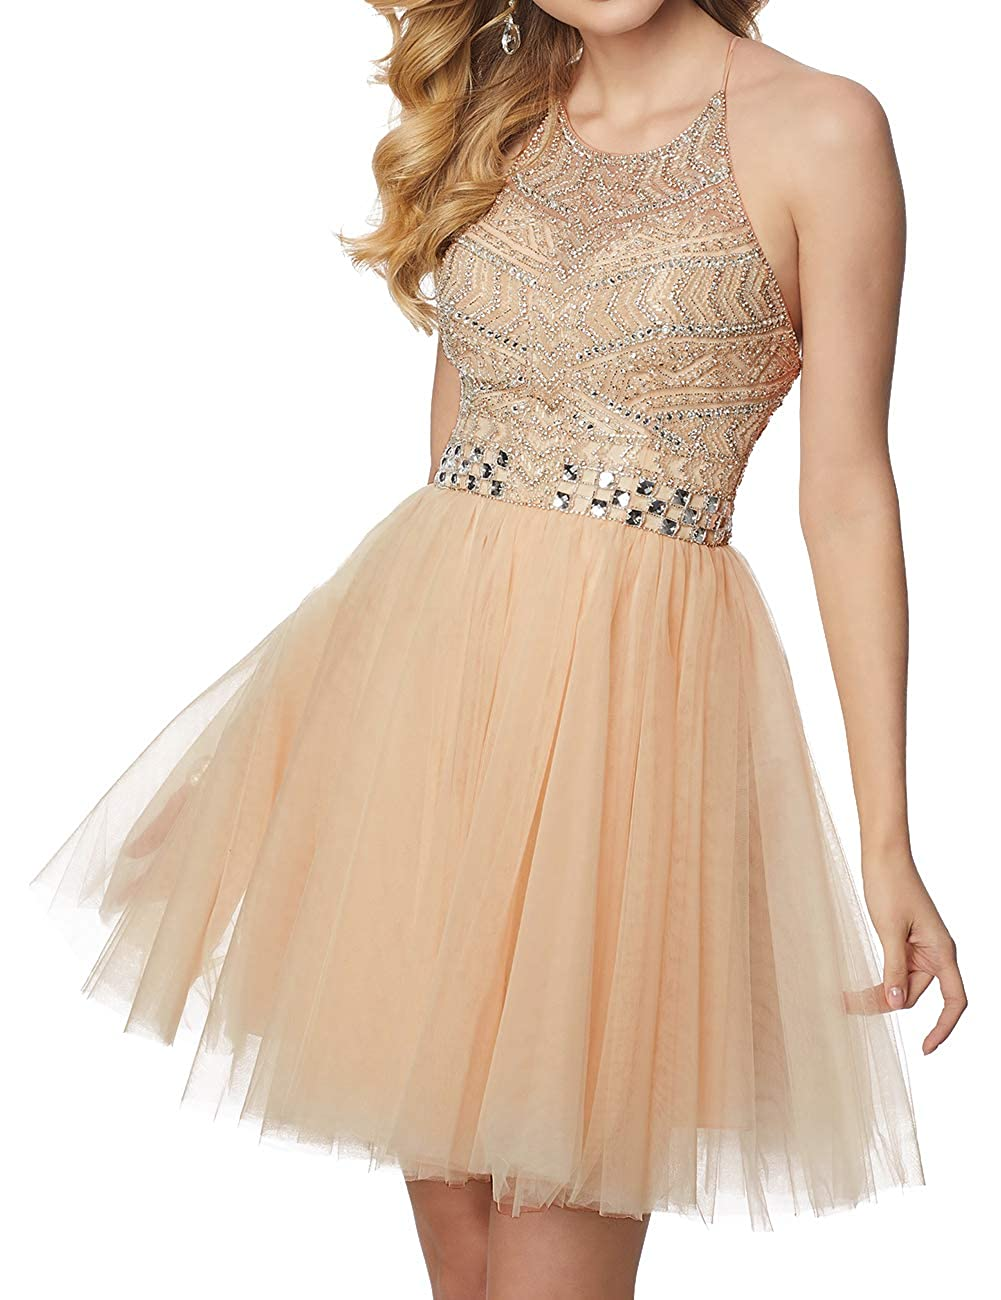 Champagne Short Homecoming Dresses Tulle Halter Cocktail Prom Gowns Beads Formal Evening Party Dress